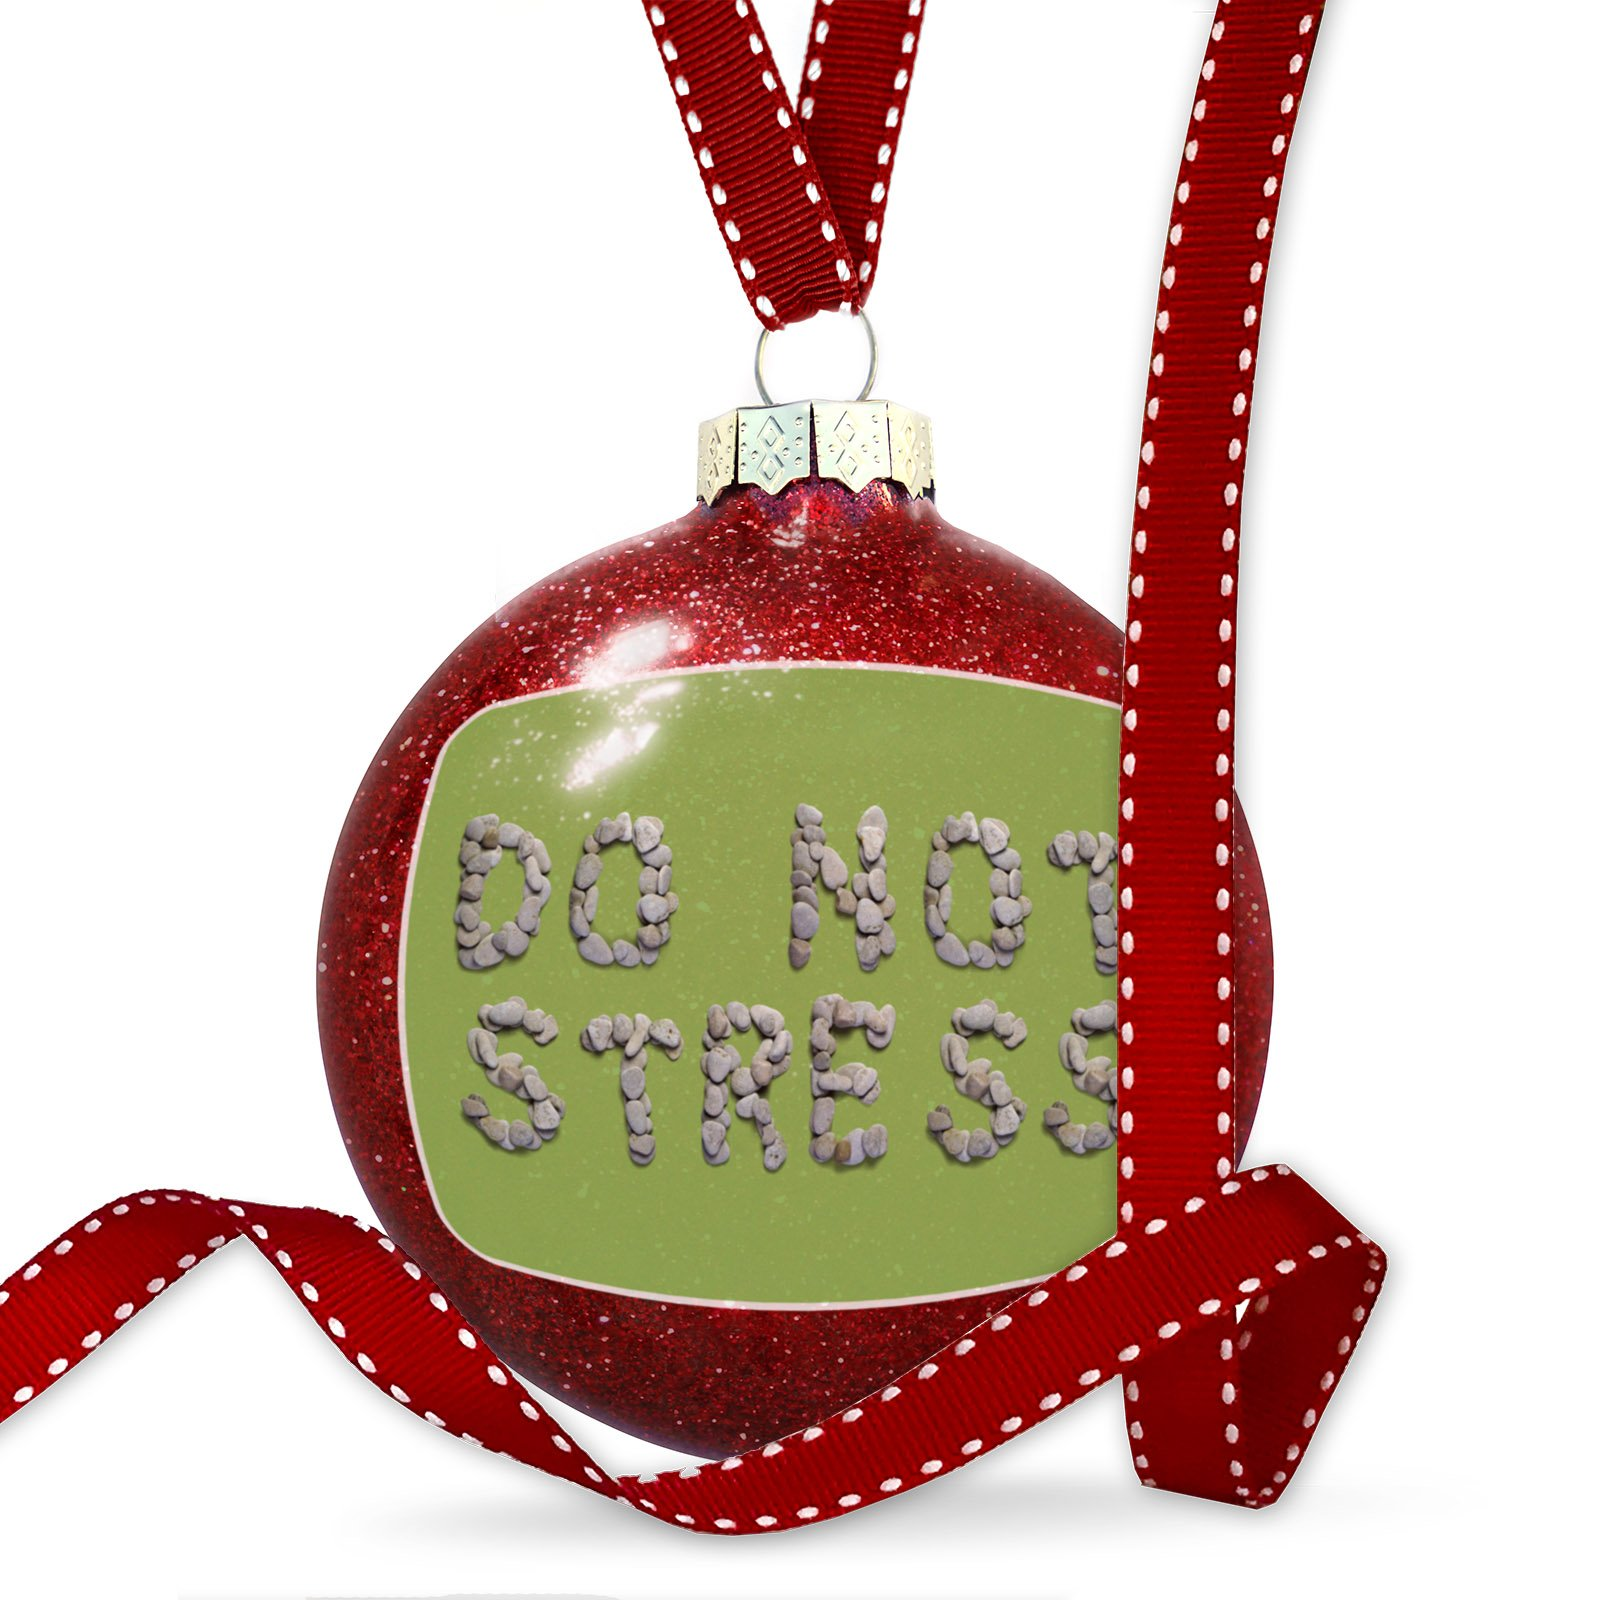 Christmas Decoration Do Not Stress Spa Stones Rocks Ornament